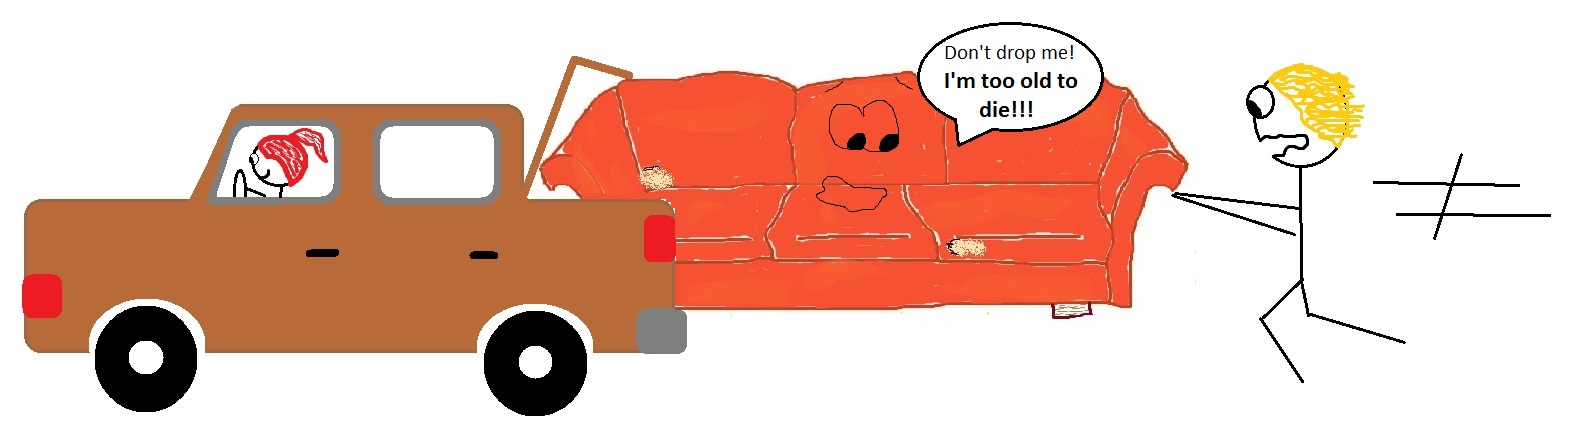 TrunkedCouch